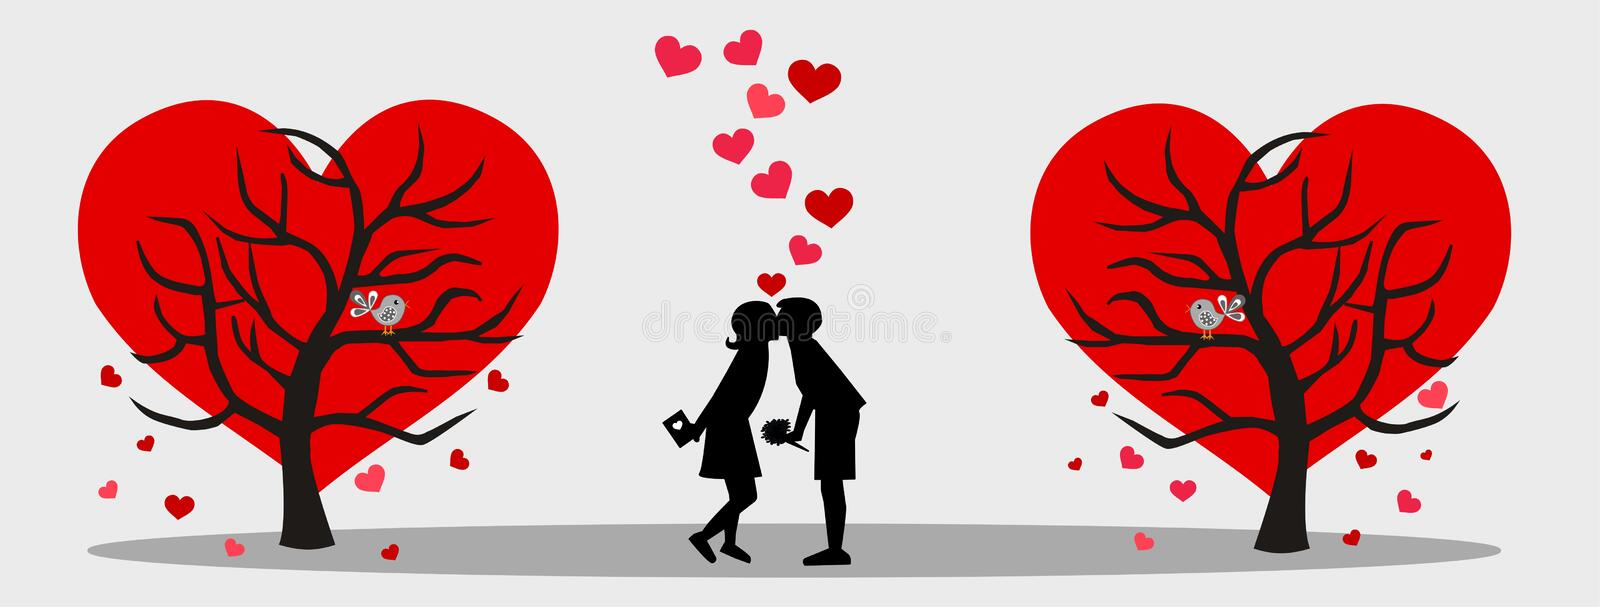 Valentines day love stock image